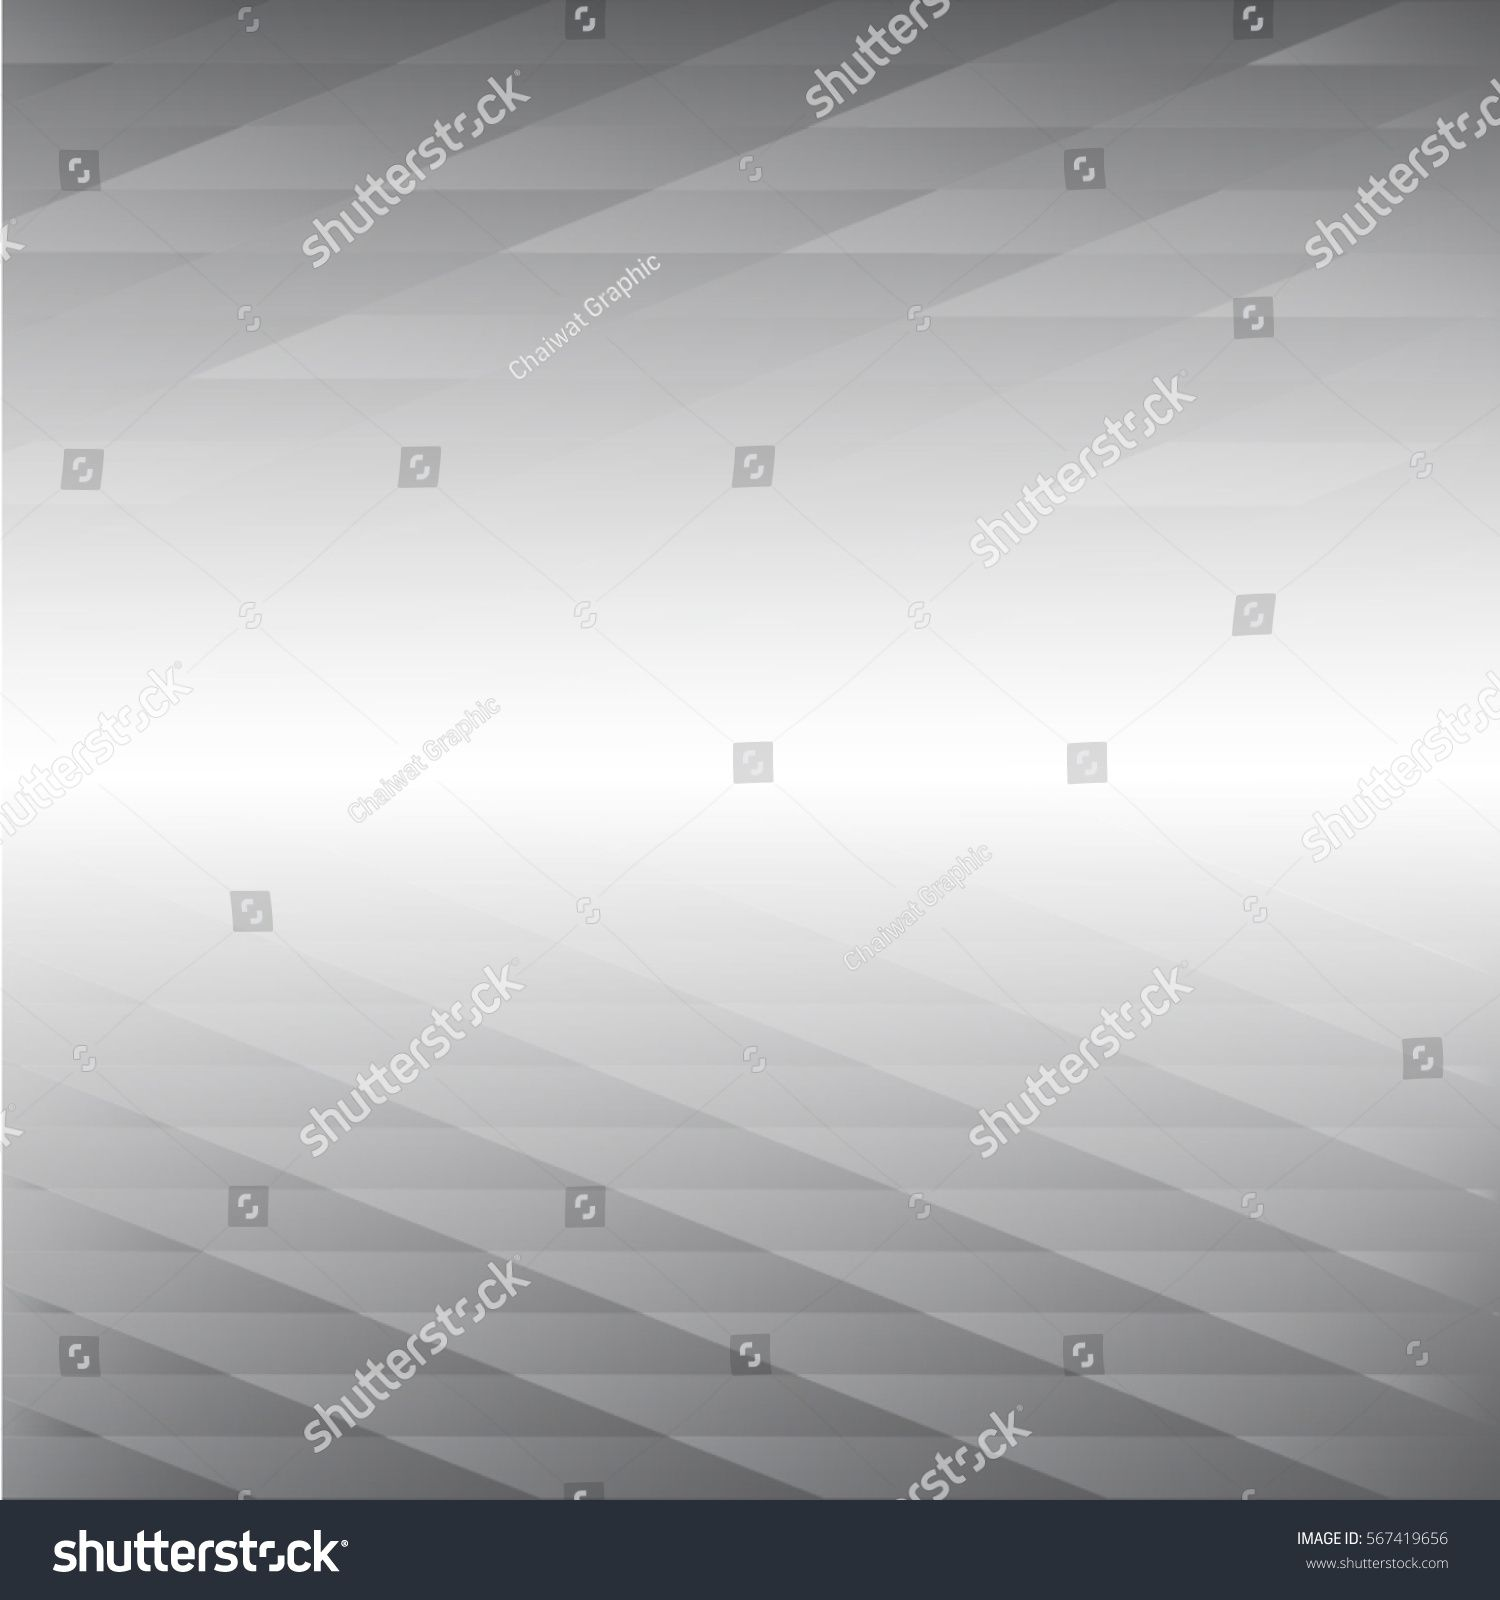 Perspective Gray Color Abstract Background Vector Illustration